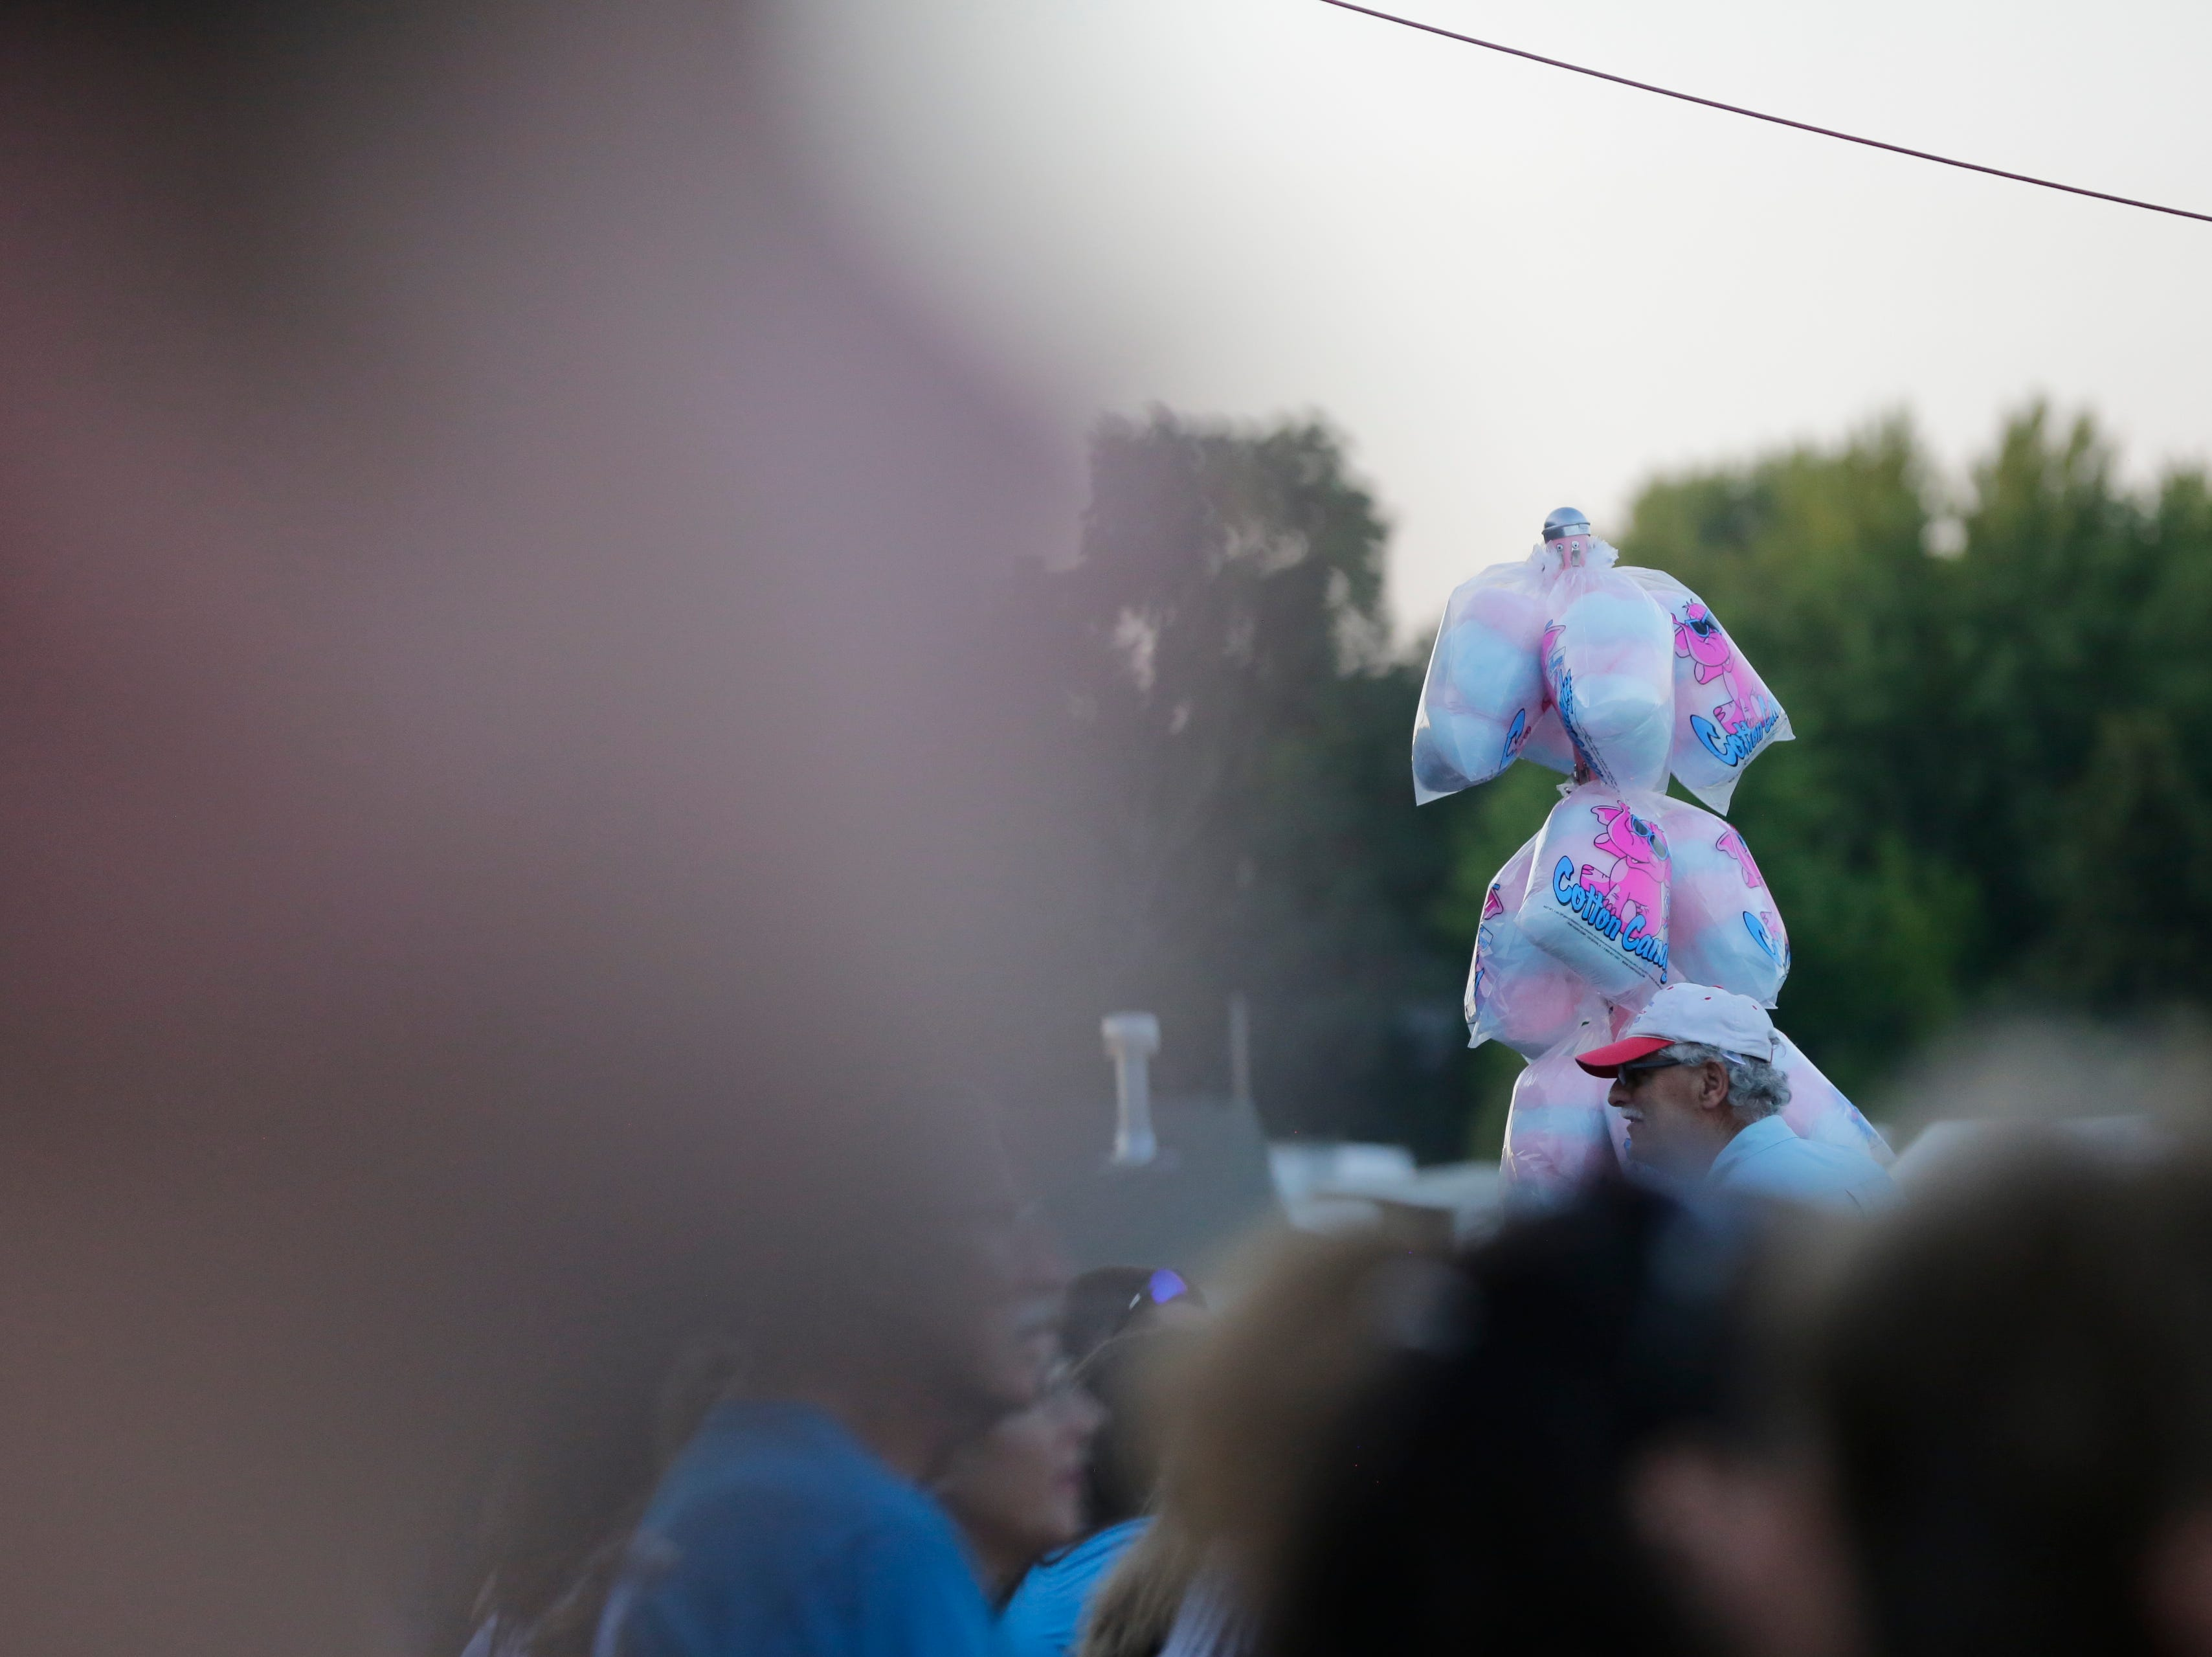 A vendor sells cotton candy during the John Michael Montgomery concert in the grandstand at the Central Wisconsin State Fair in Marshfield Wednesday, August 22, 2018.